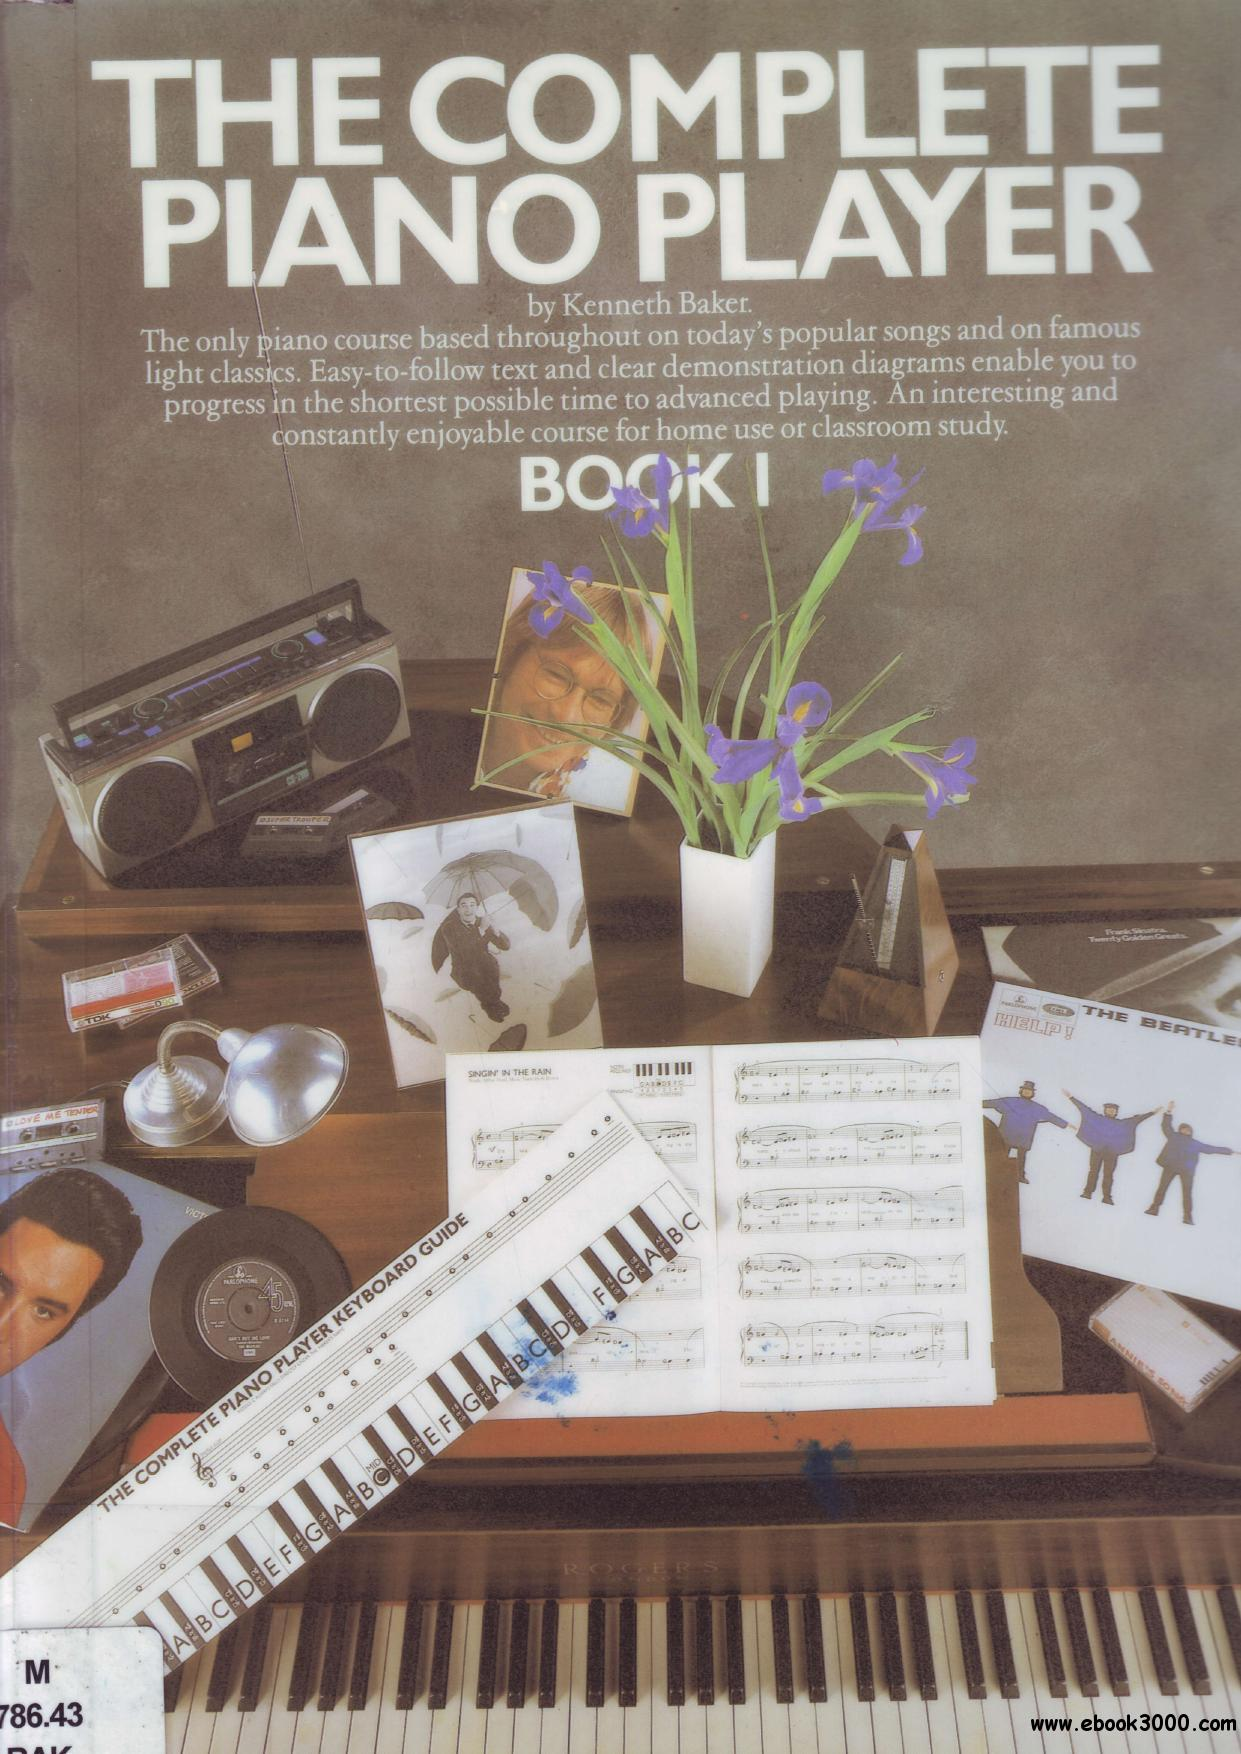 The Complete Piano Player: Book 1